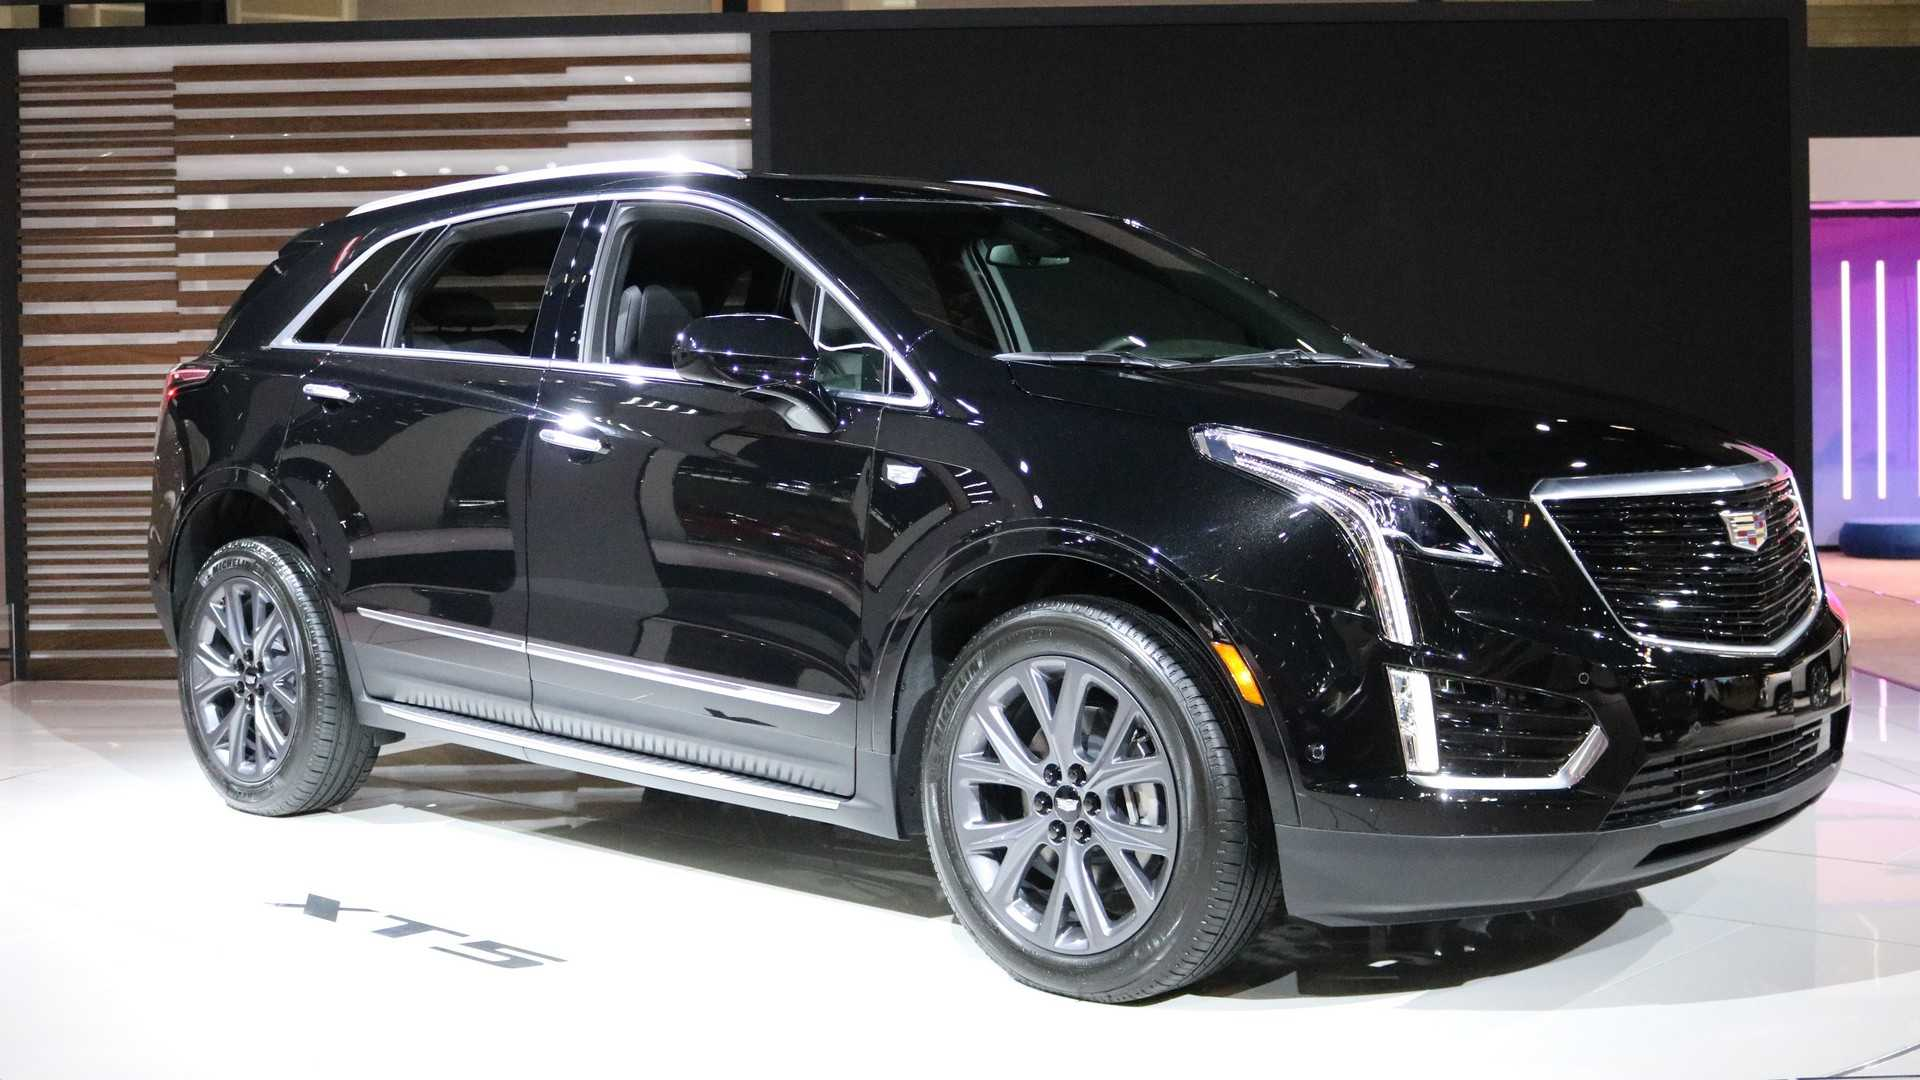 62 Best 2020 Cadillac Xt5 Pictures Configurations